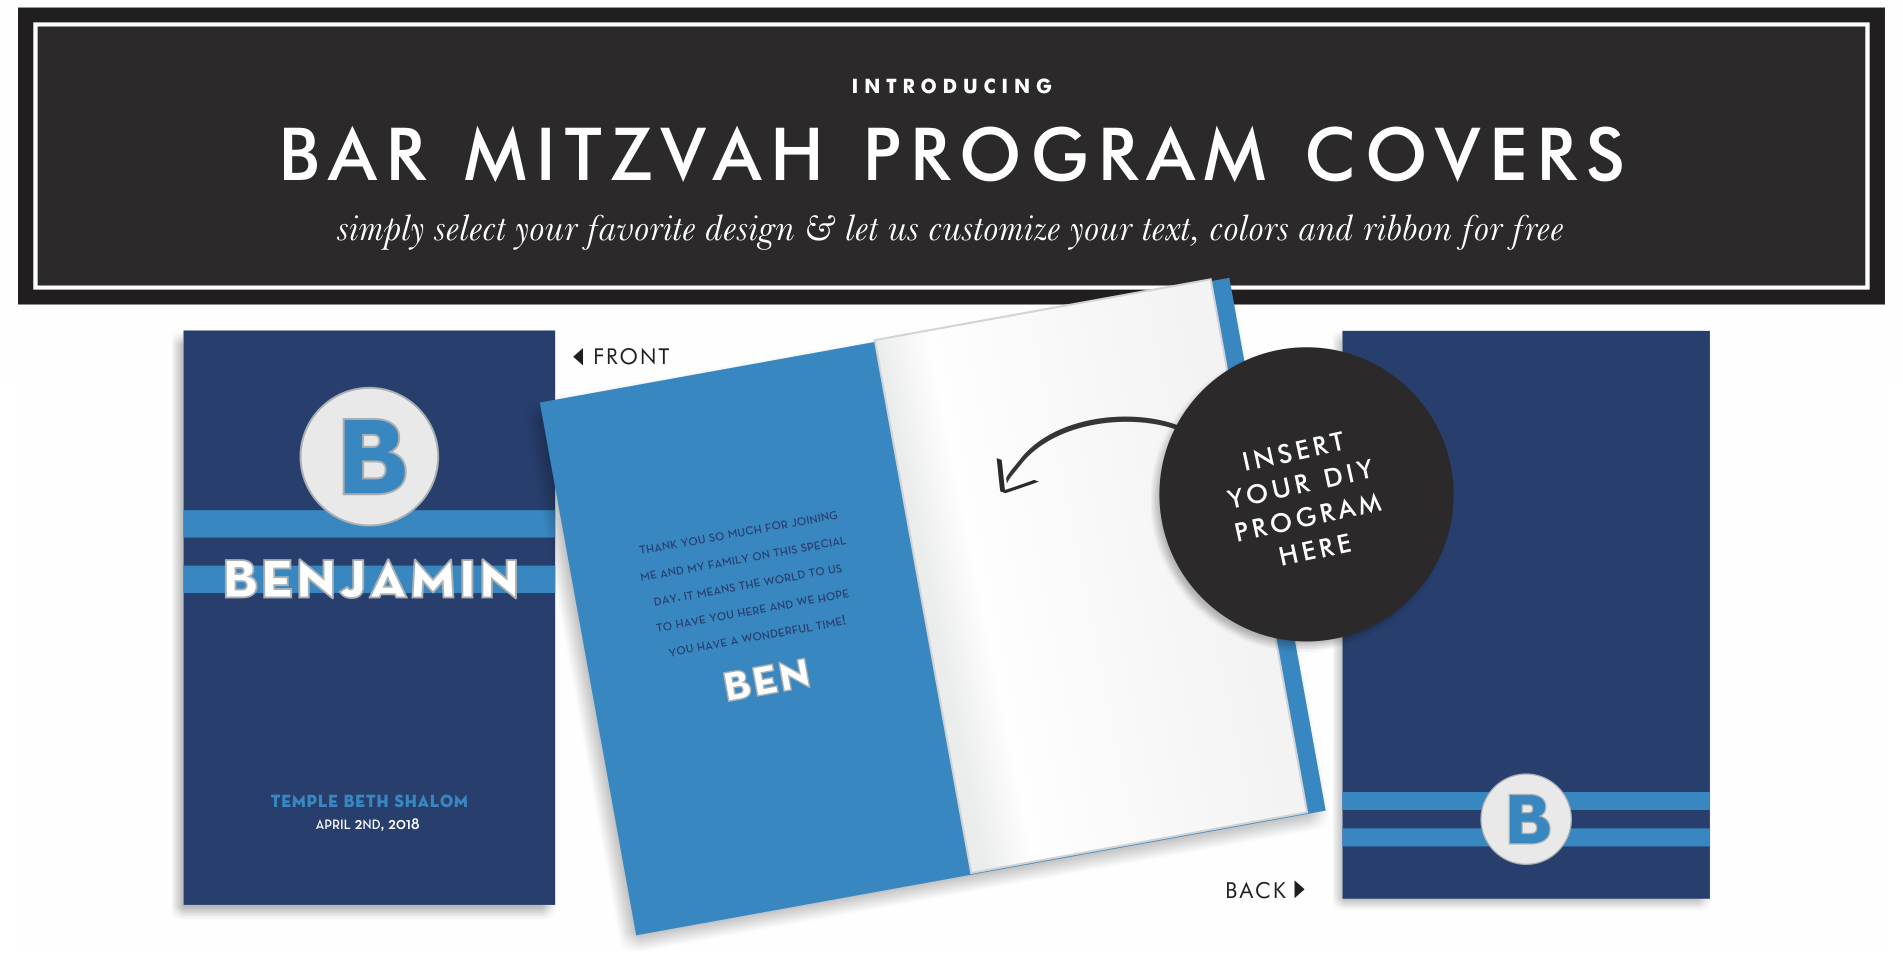 Bat Mitzvah invitations custom made and perfectly coordinated in your choice of papers and colors to match your style. Choose one of our unique Bat Mitzvah invitation themes to get started!